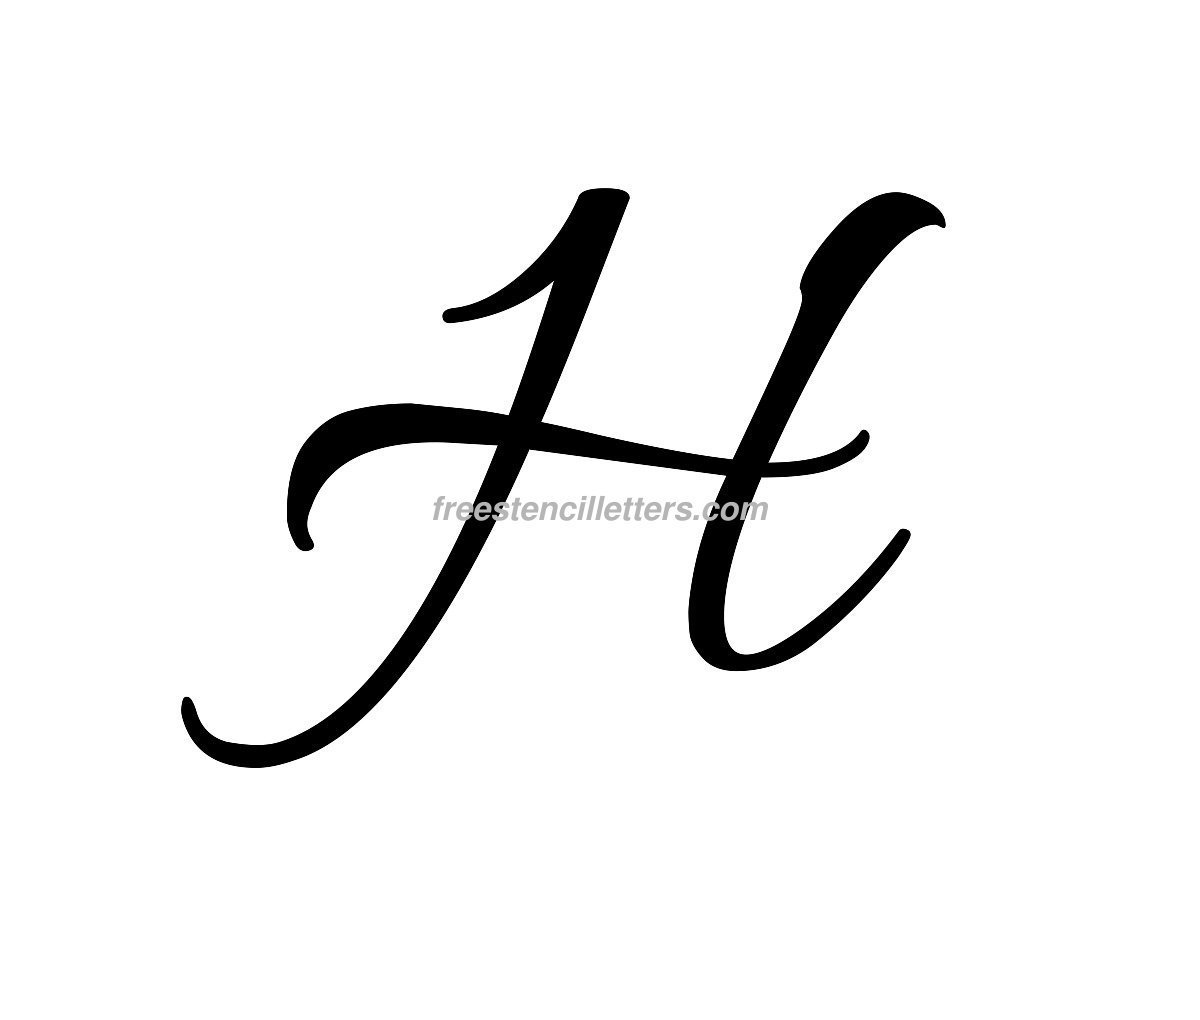 Free Stencil Letters To Print And Cut Out Cursive